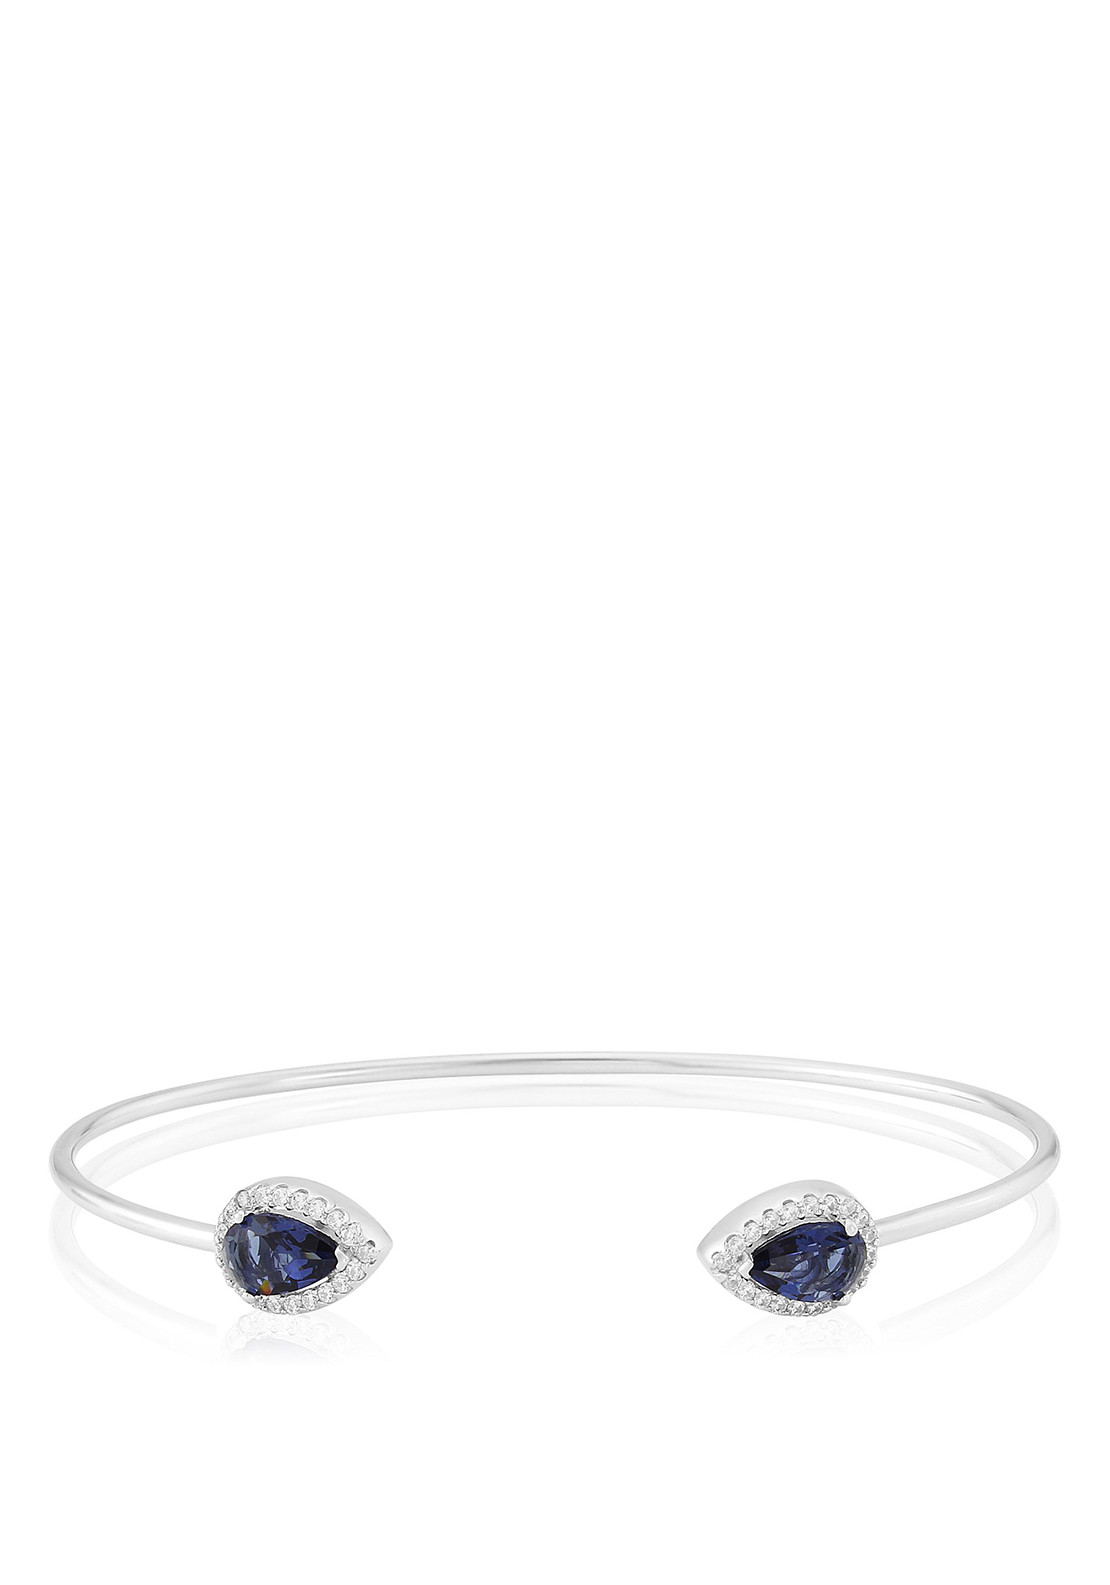 Waterford Crystal Faux Sapphire and Pave Bangle, Silver